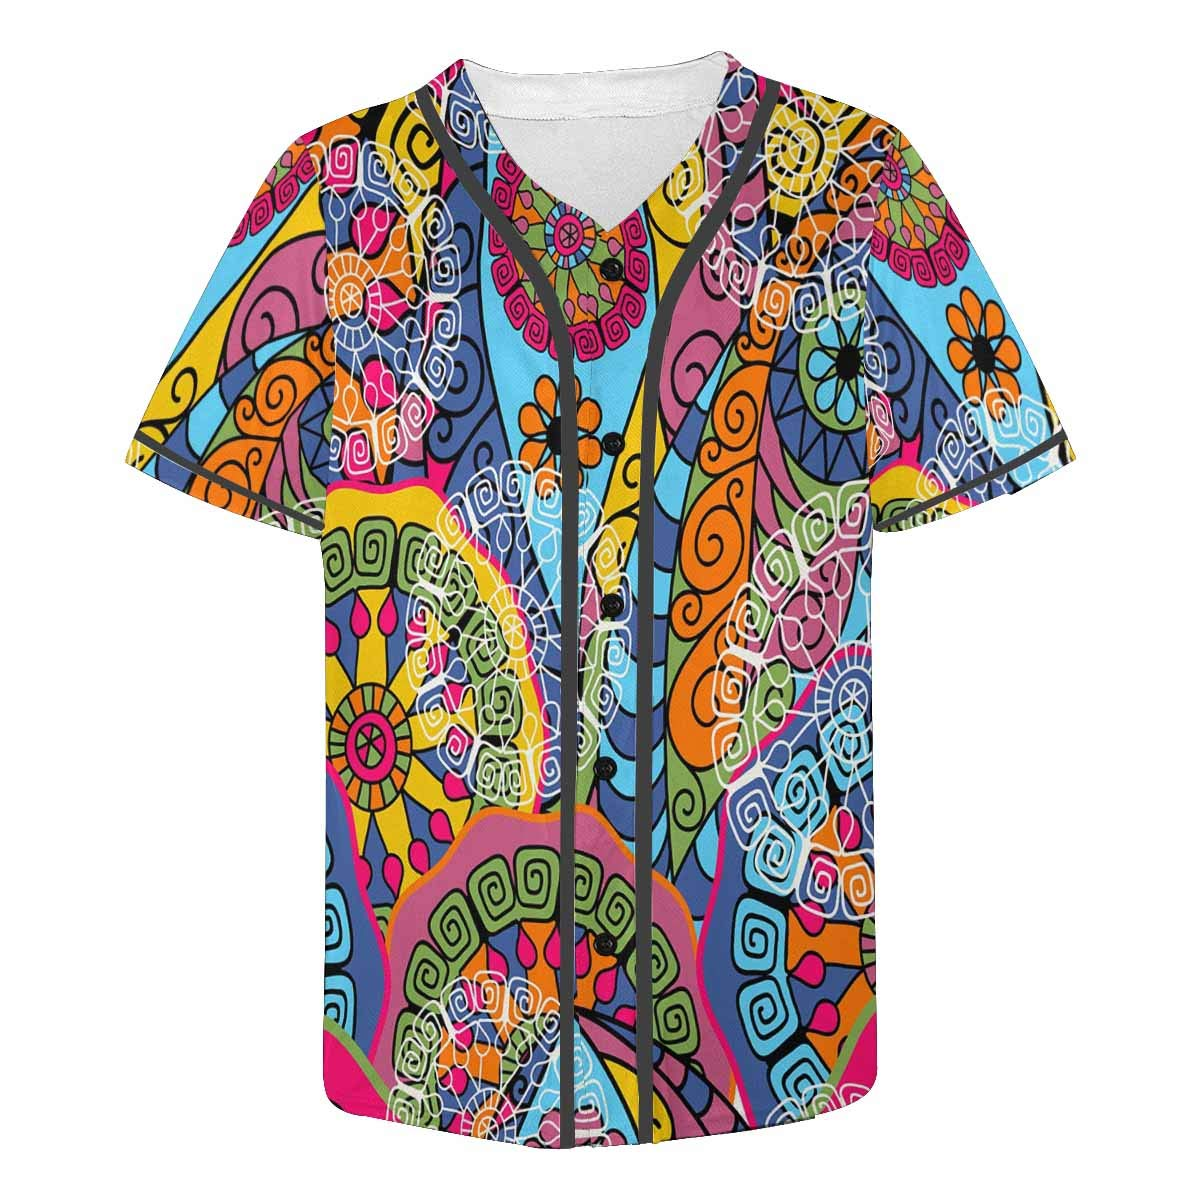 INTERESTPRINT Mens Button Down Baseball Jersey Colorful Abstracts Translucent Figures